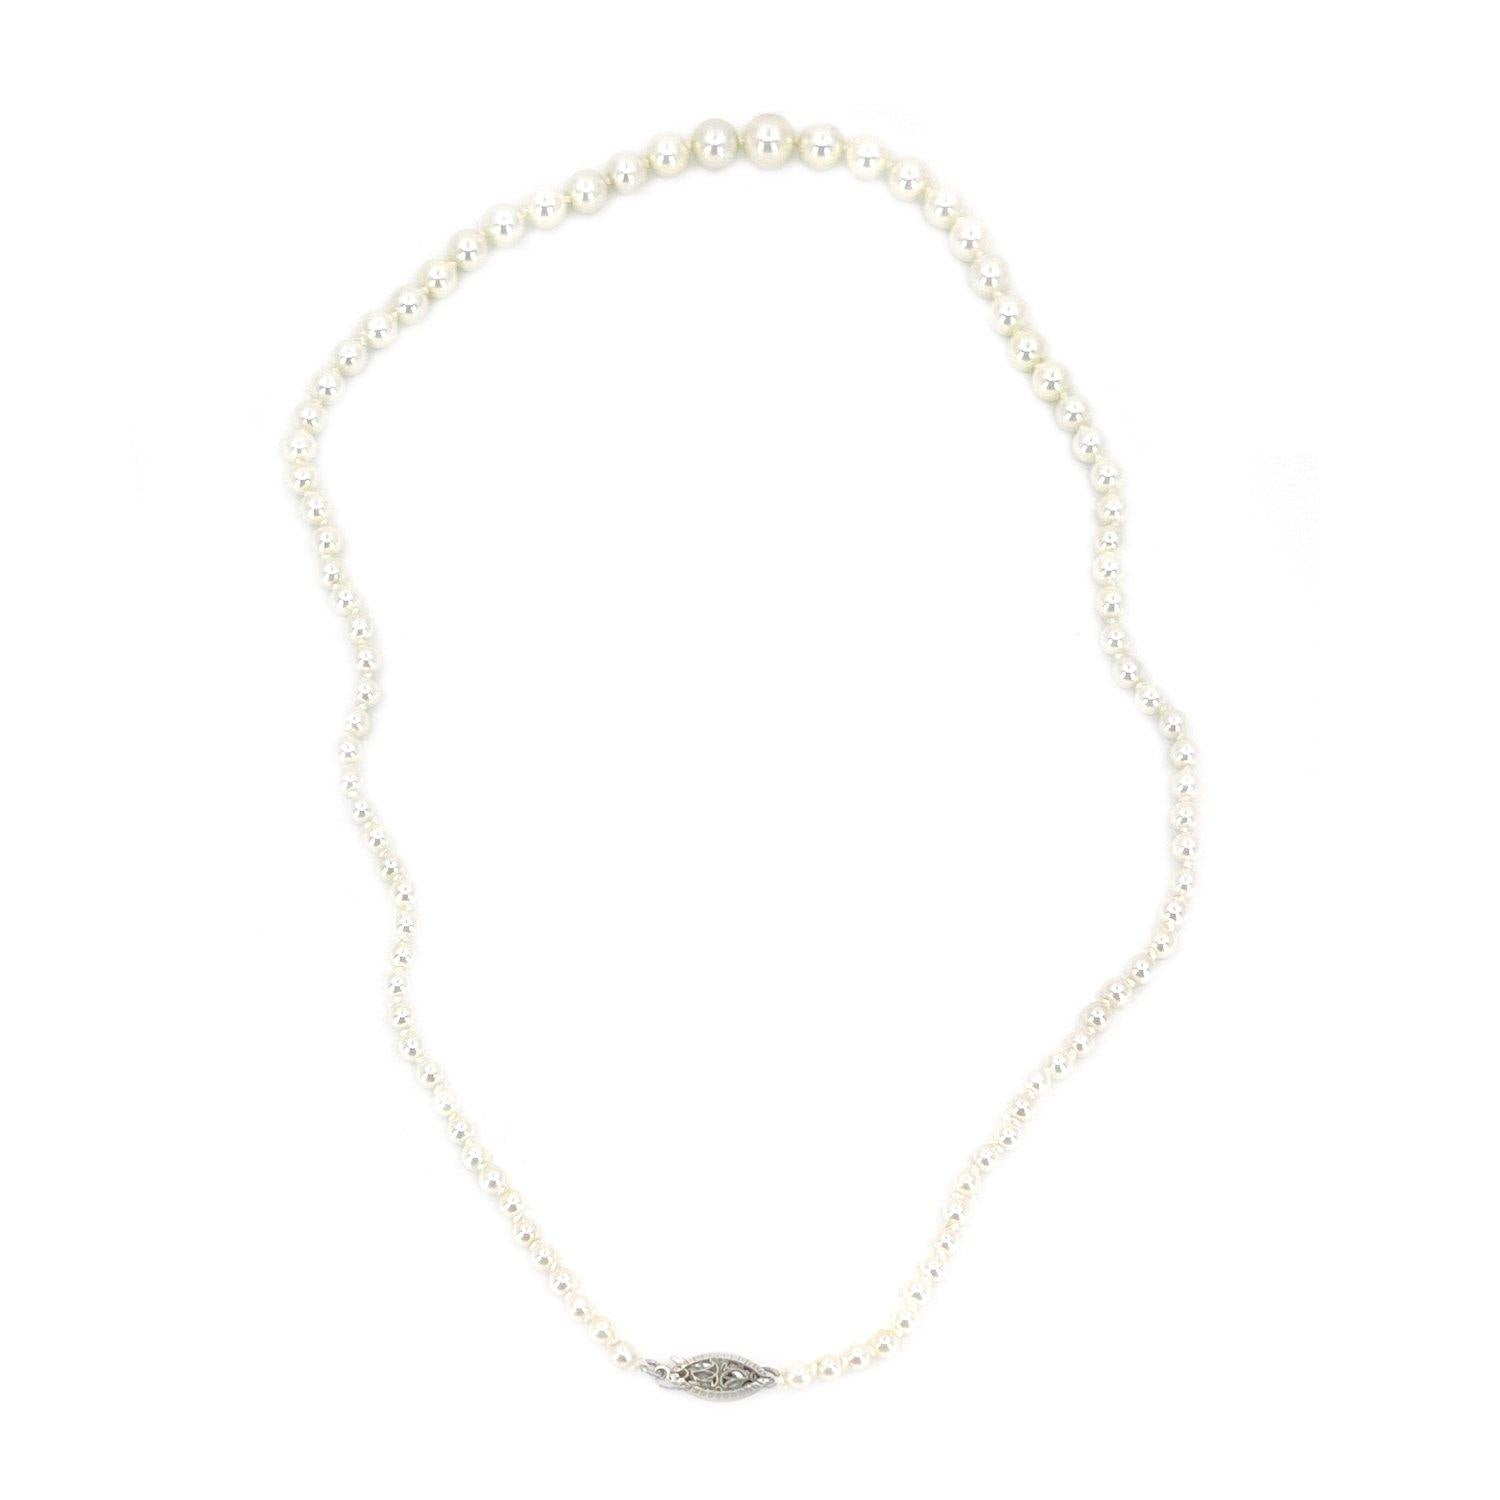 "This is a stunning example of a classic Japanese akoya saltwater cultured pearl necklace.  The pearls are graduated and range from 3.00-7.00mm. They are round with excellent luster and sharp rosy overtones. The have almost no blemishes.  Clasp is in solid yellow gold and is a filigree design. It is stamped ""14K"".  Total length is 17.50 inches.  All pearls are truly vintage and have only been lightly cleaned and restrung."